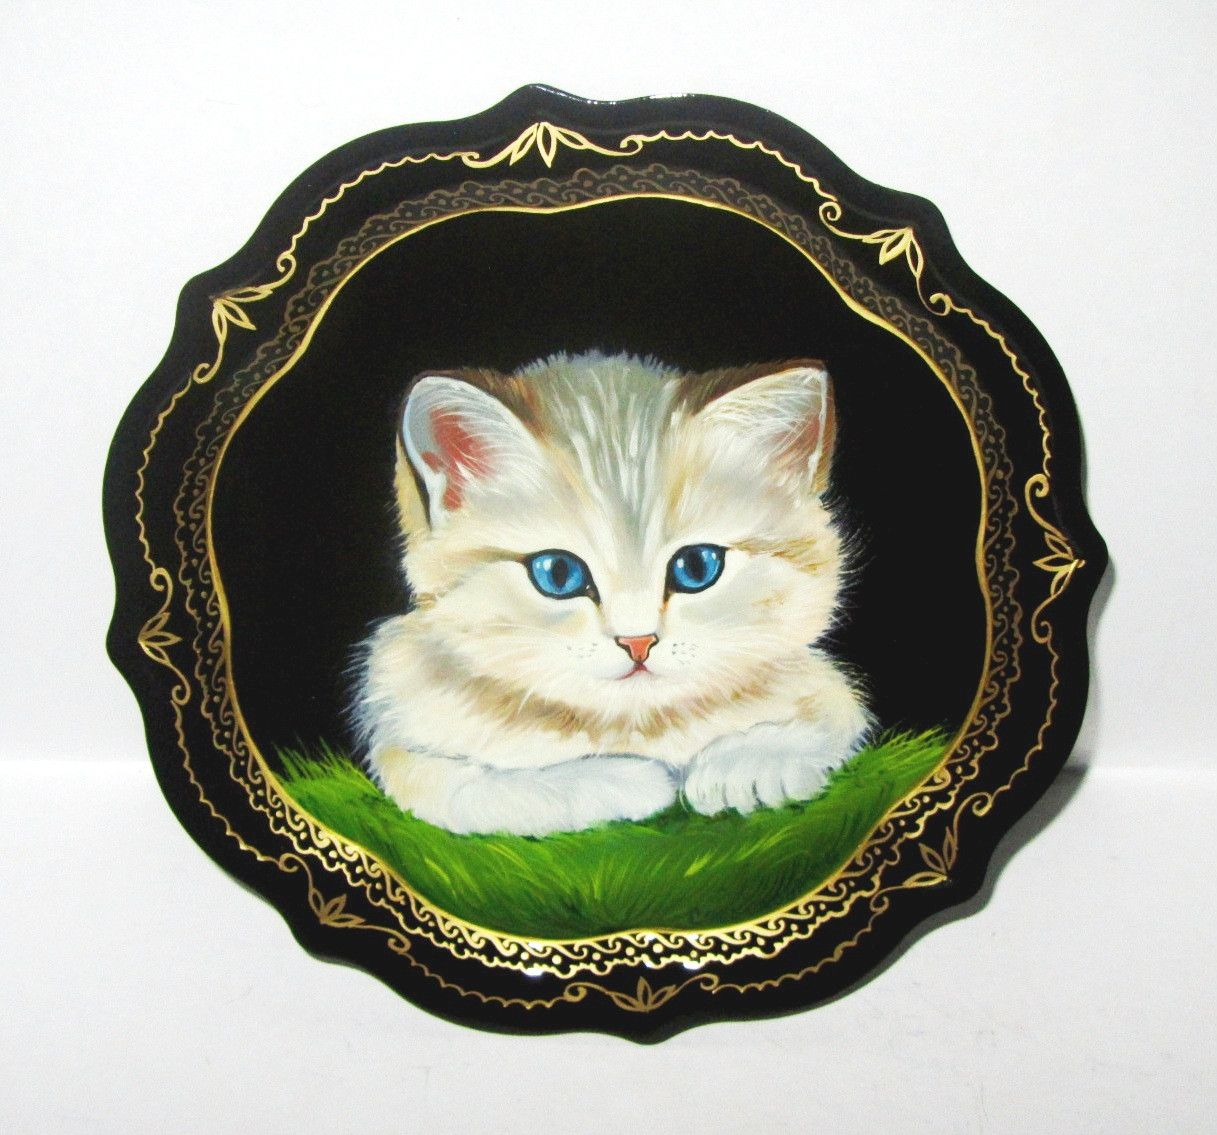 """Souvenirs from N. Tagil / Tray """"Subject painting. Kitten"""", 19 cm"""